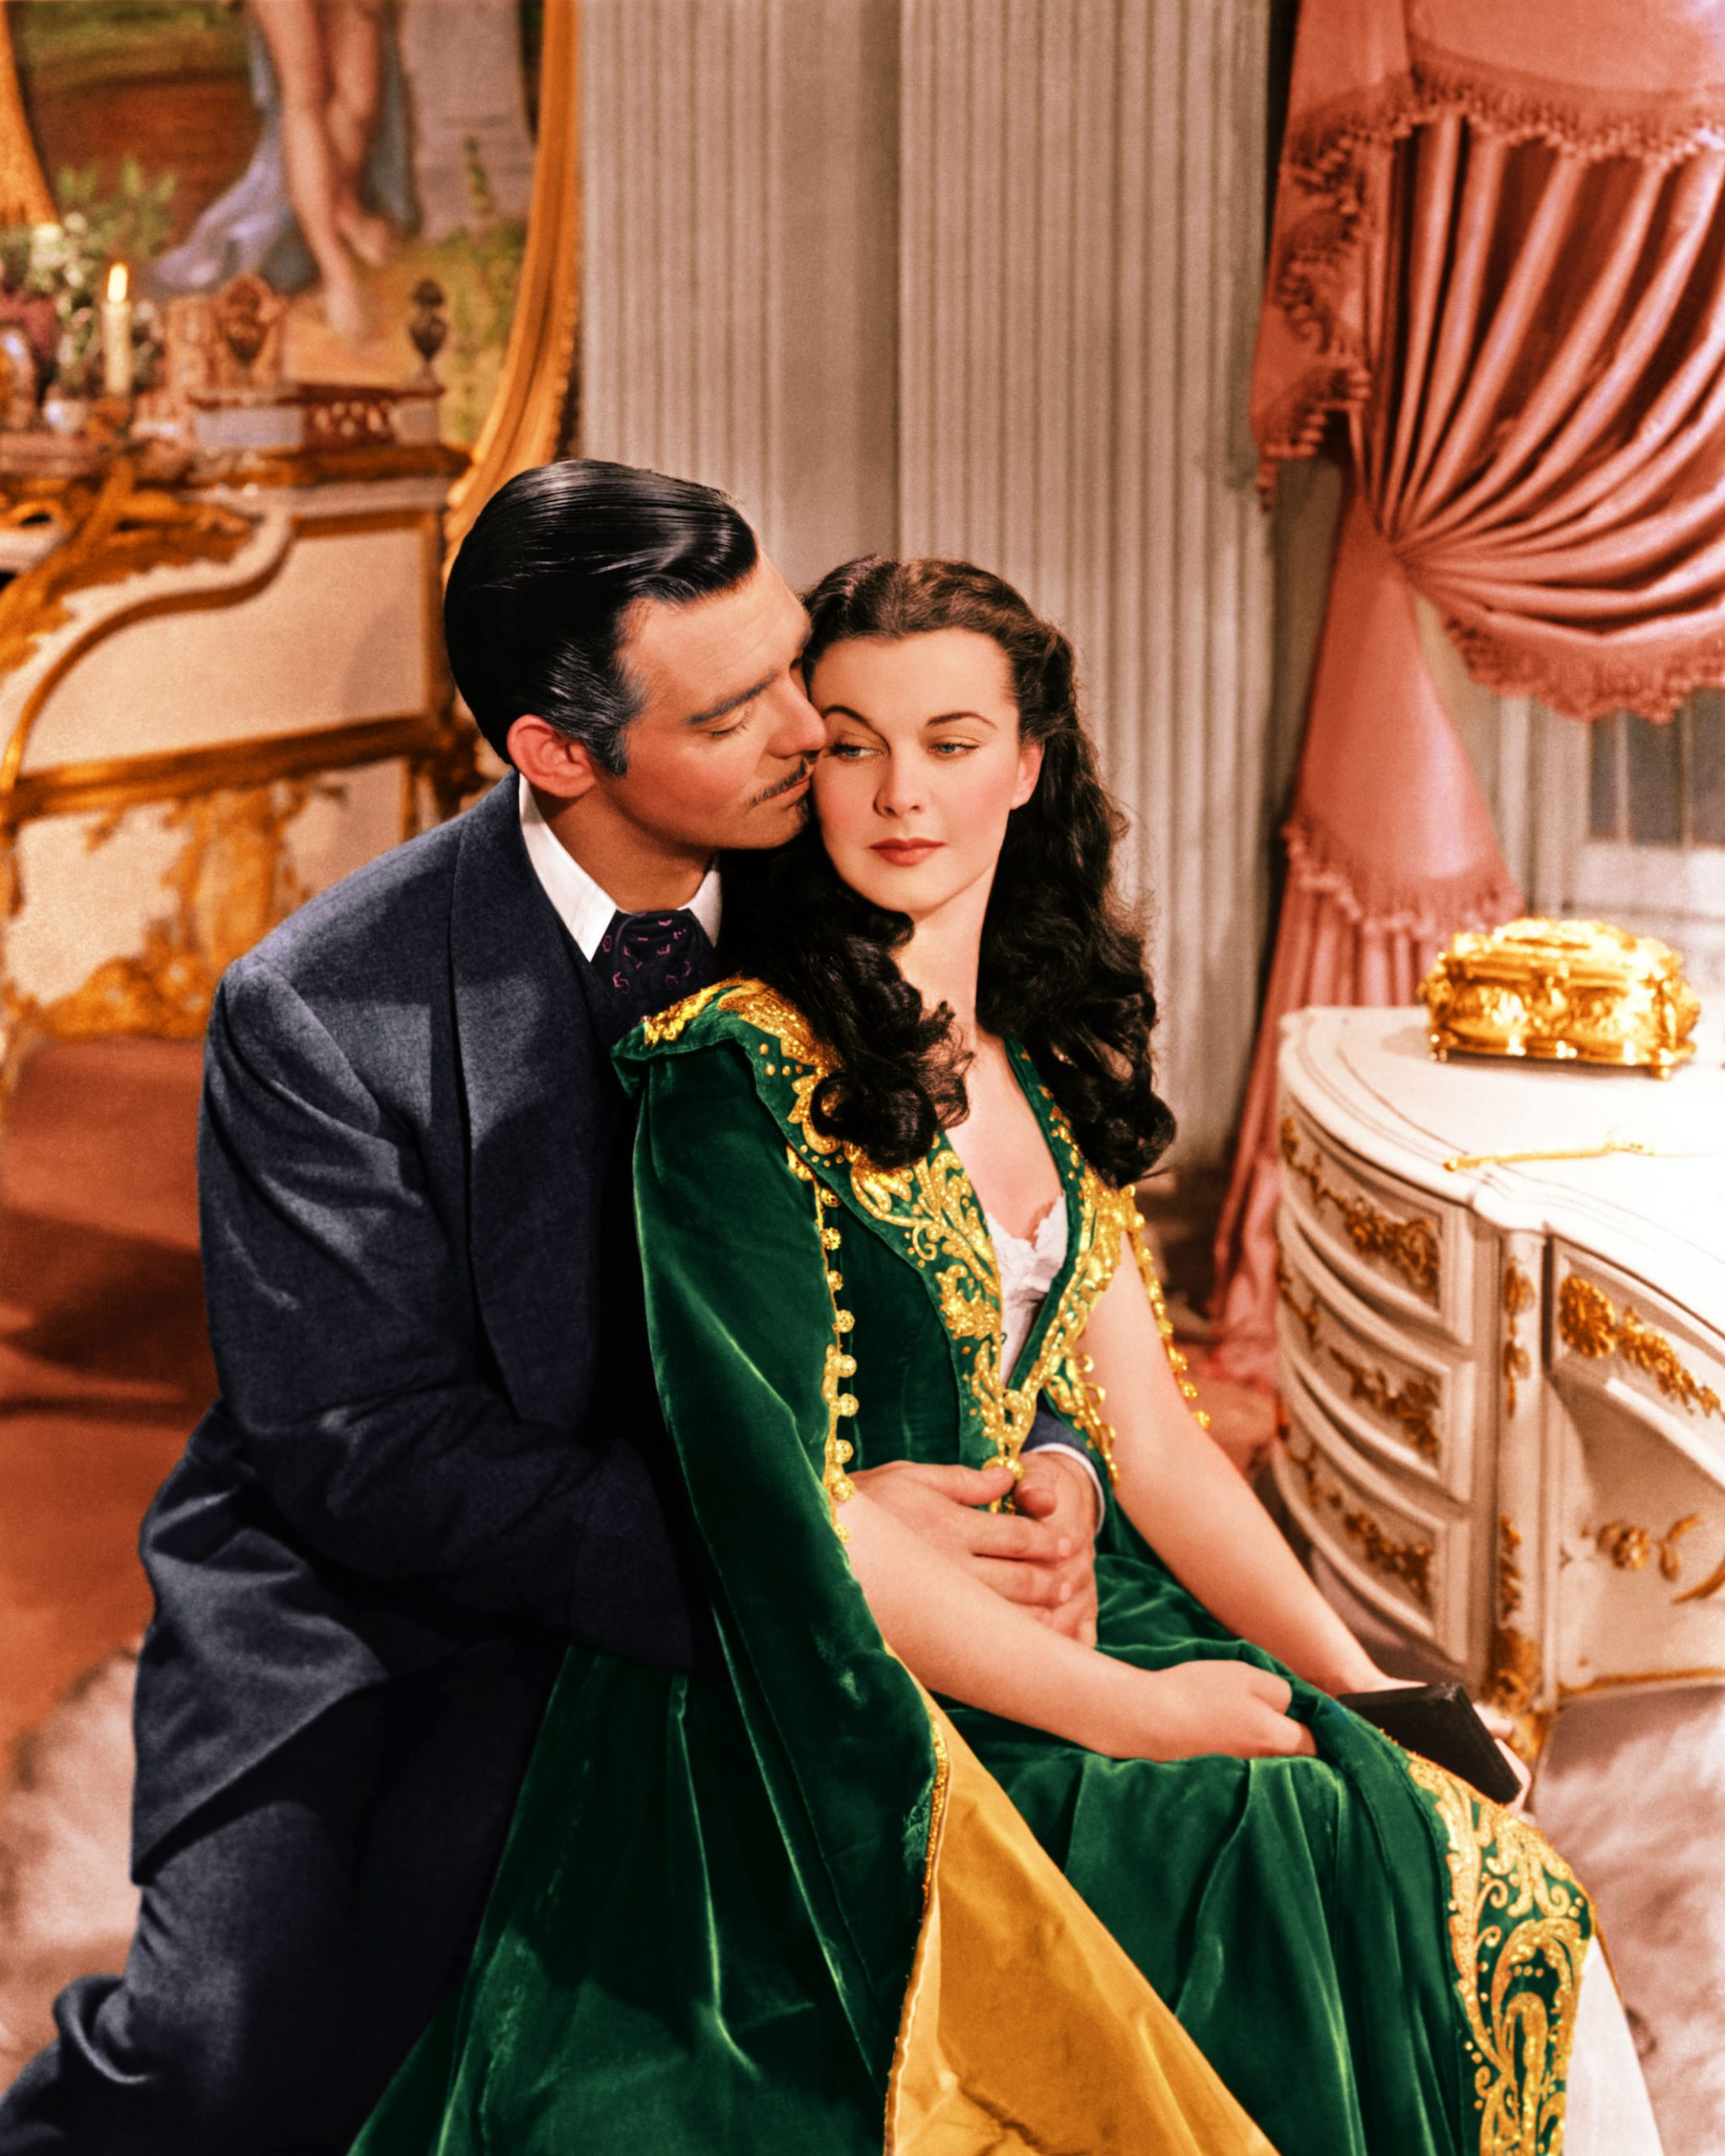 gone with the wind clark gable and vivien leigh